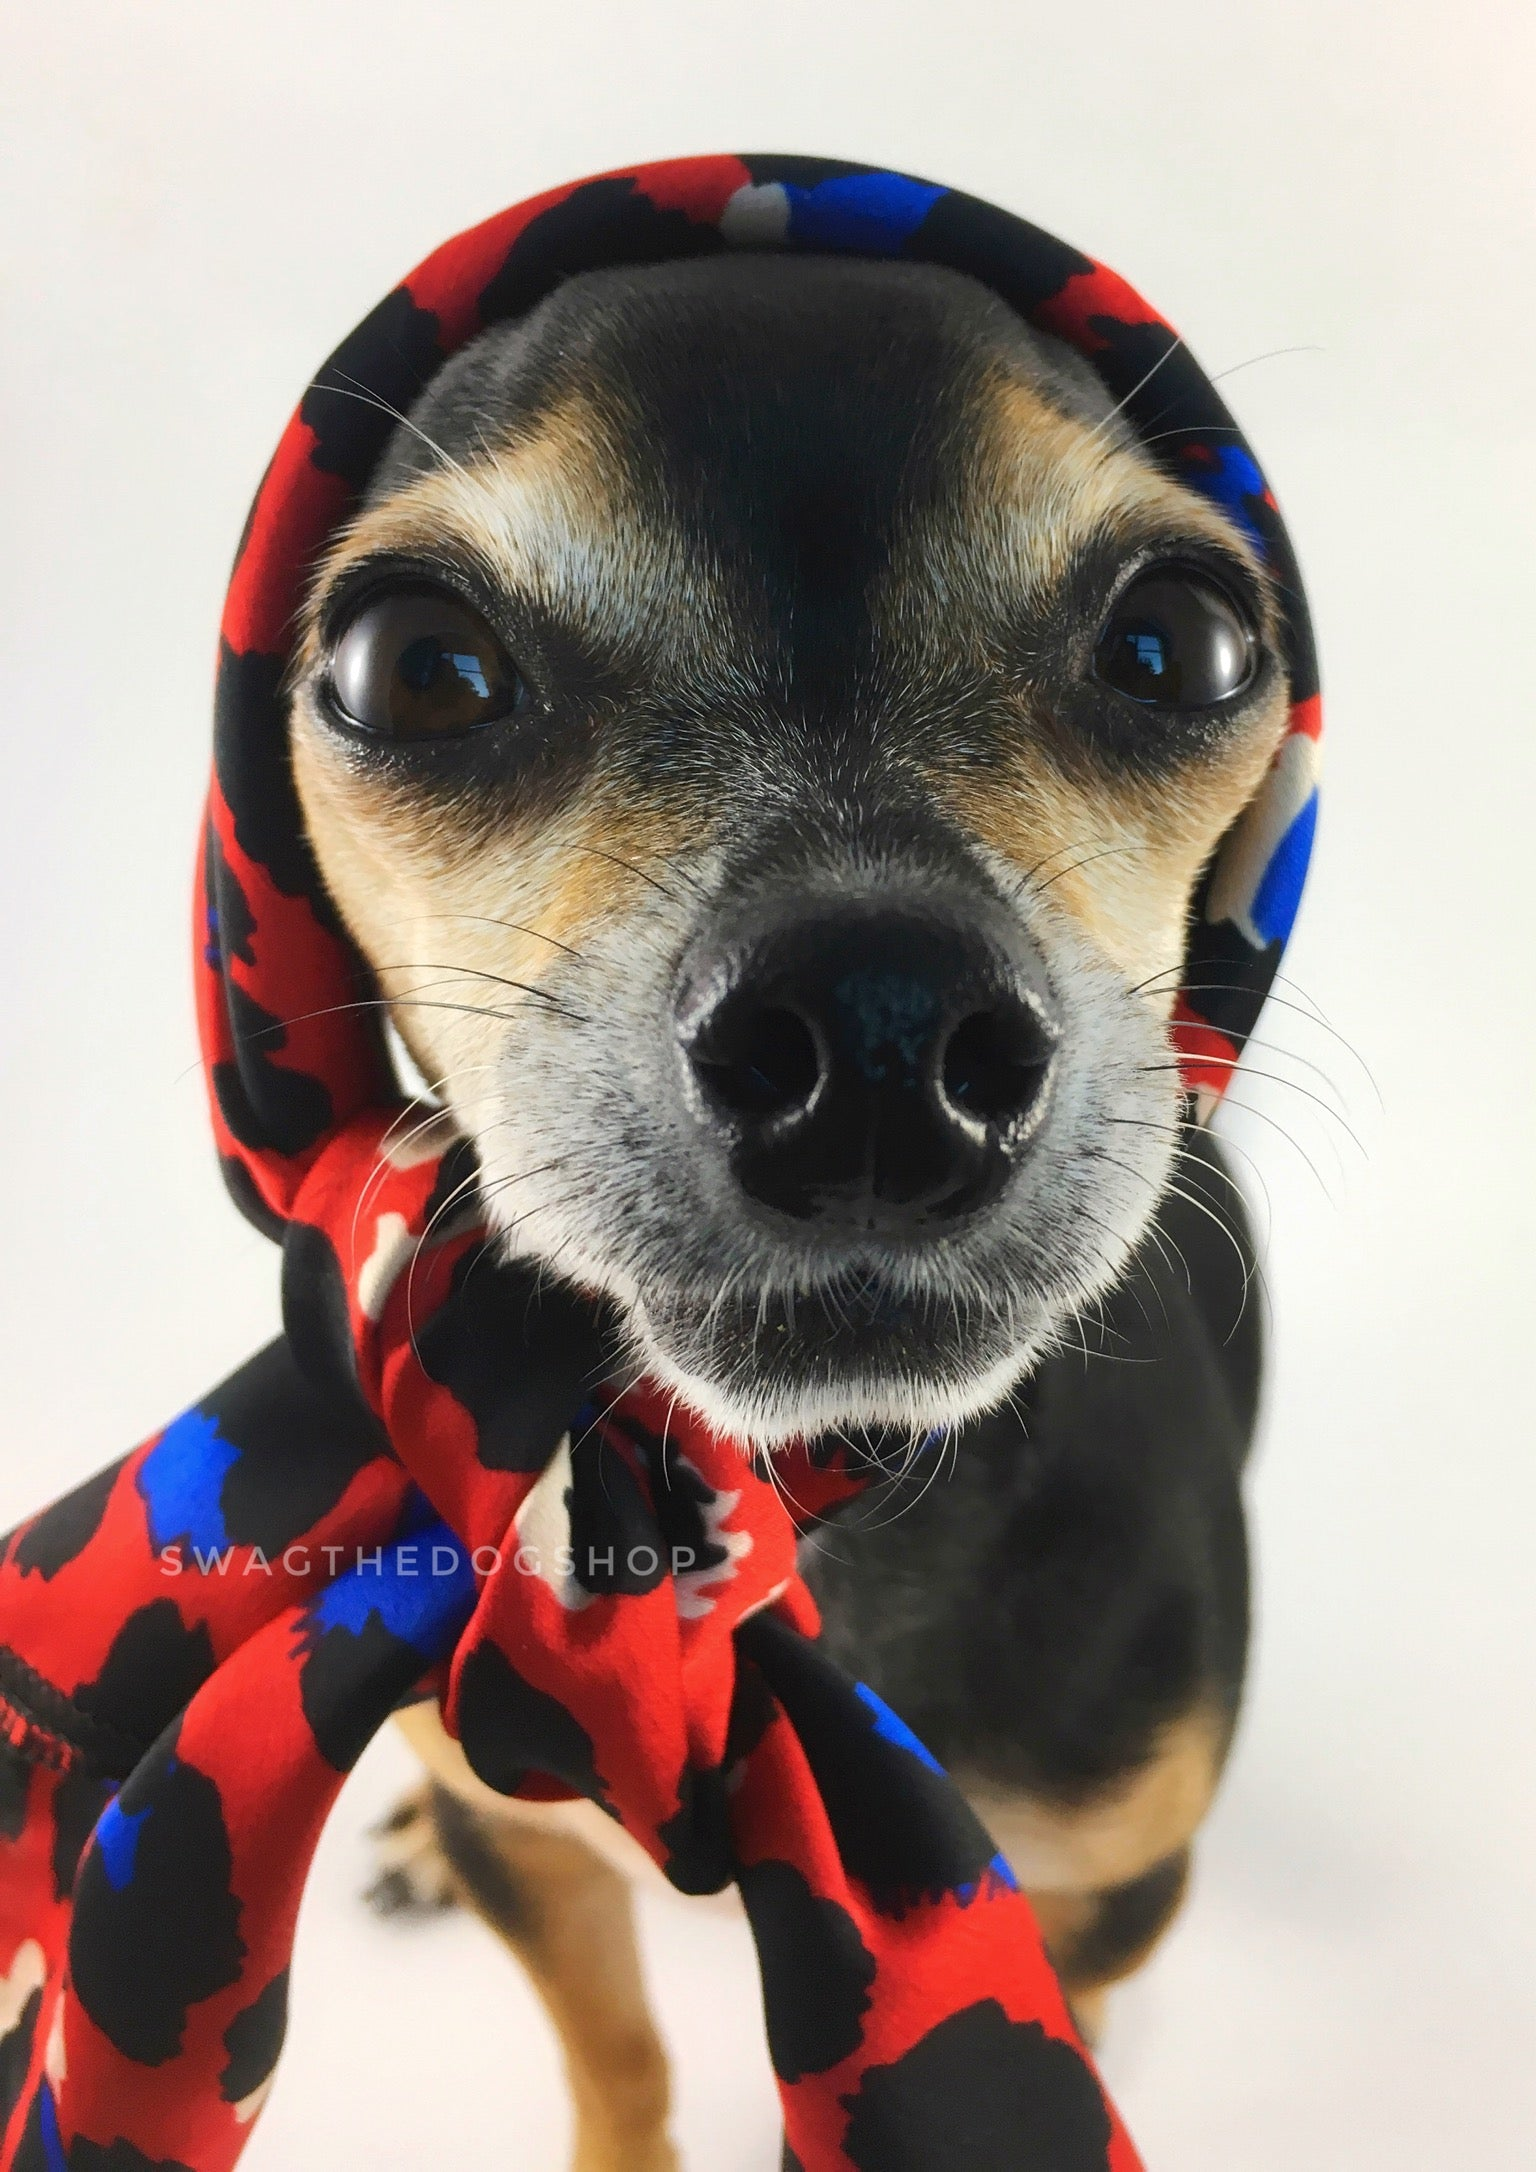 Fierce Vibrant Red with Blue Swagdana Scarf - Bust of Cute Chihuahua Wearing Swagdana Scarf as Headscarf. Dog Bandana. Dog Scarf